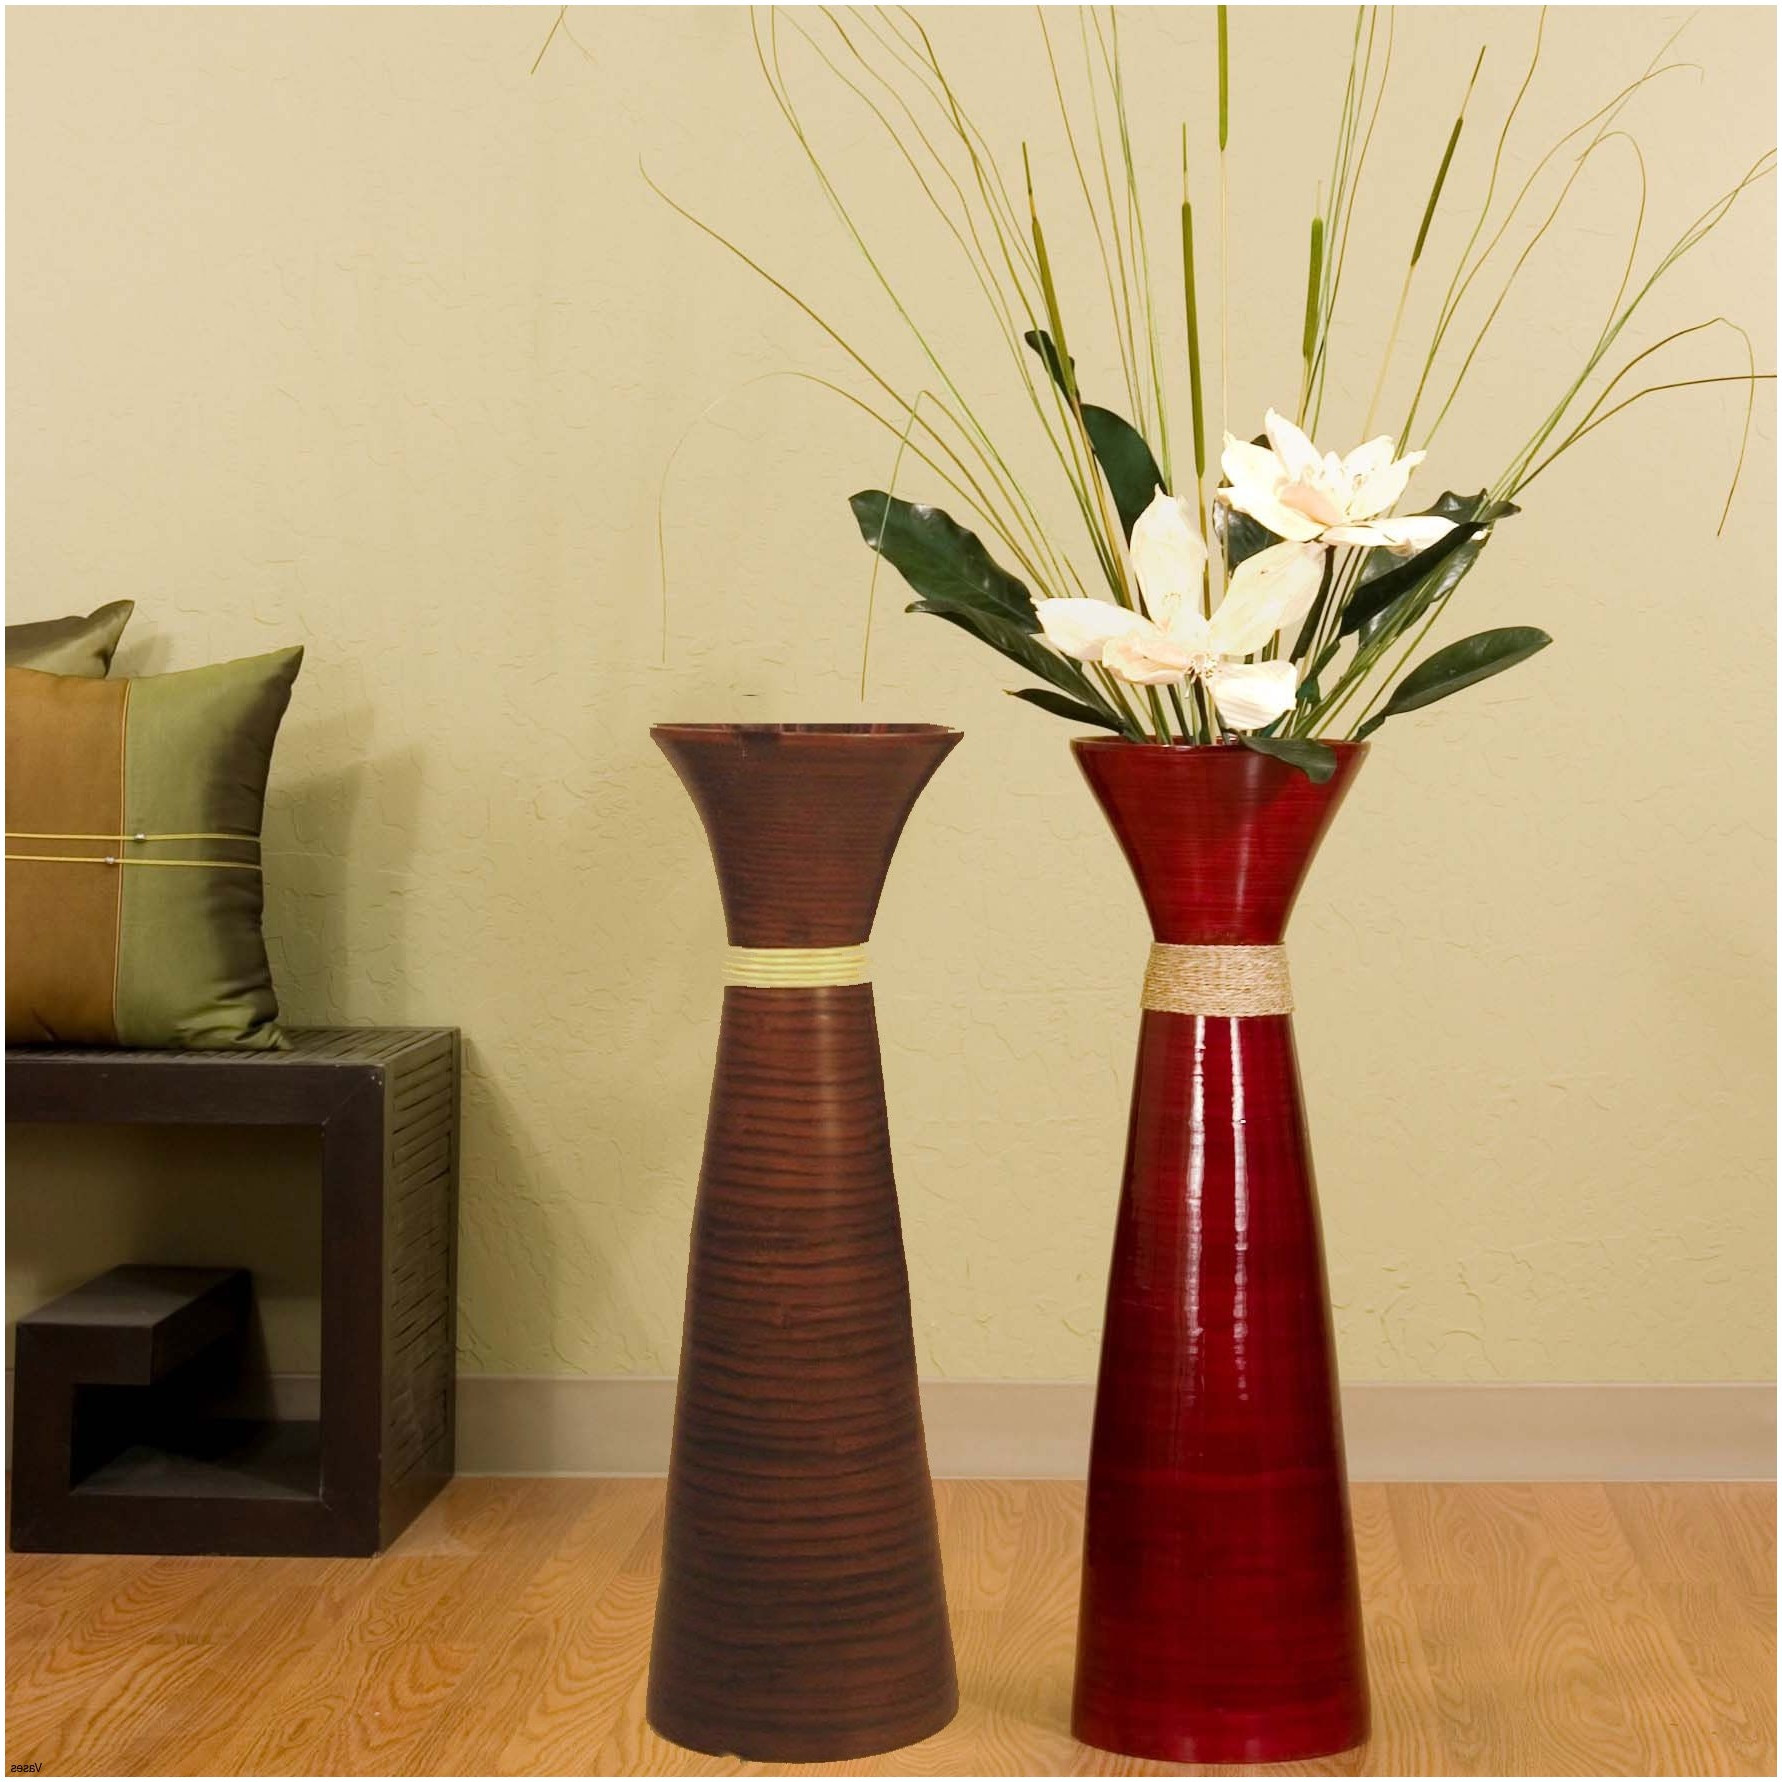 bamboo floor vase of 21 beau decorative vases anciendemutu org for floor vase colorsh vases red decorative image colorsi 0d